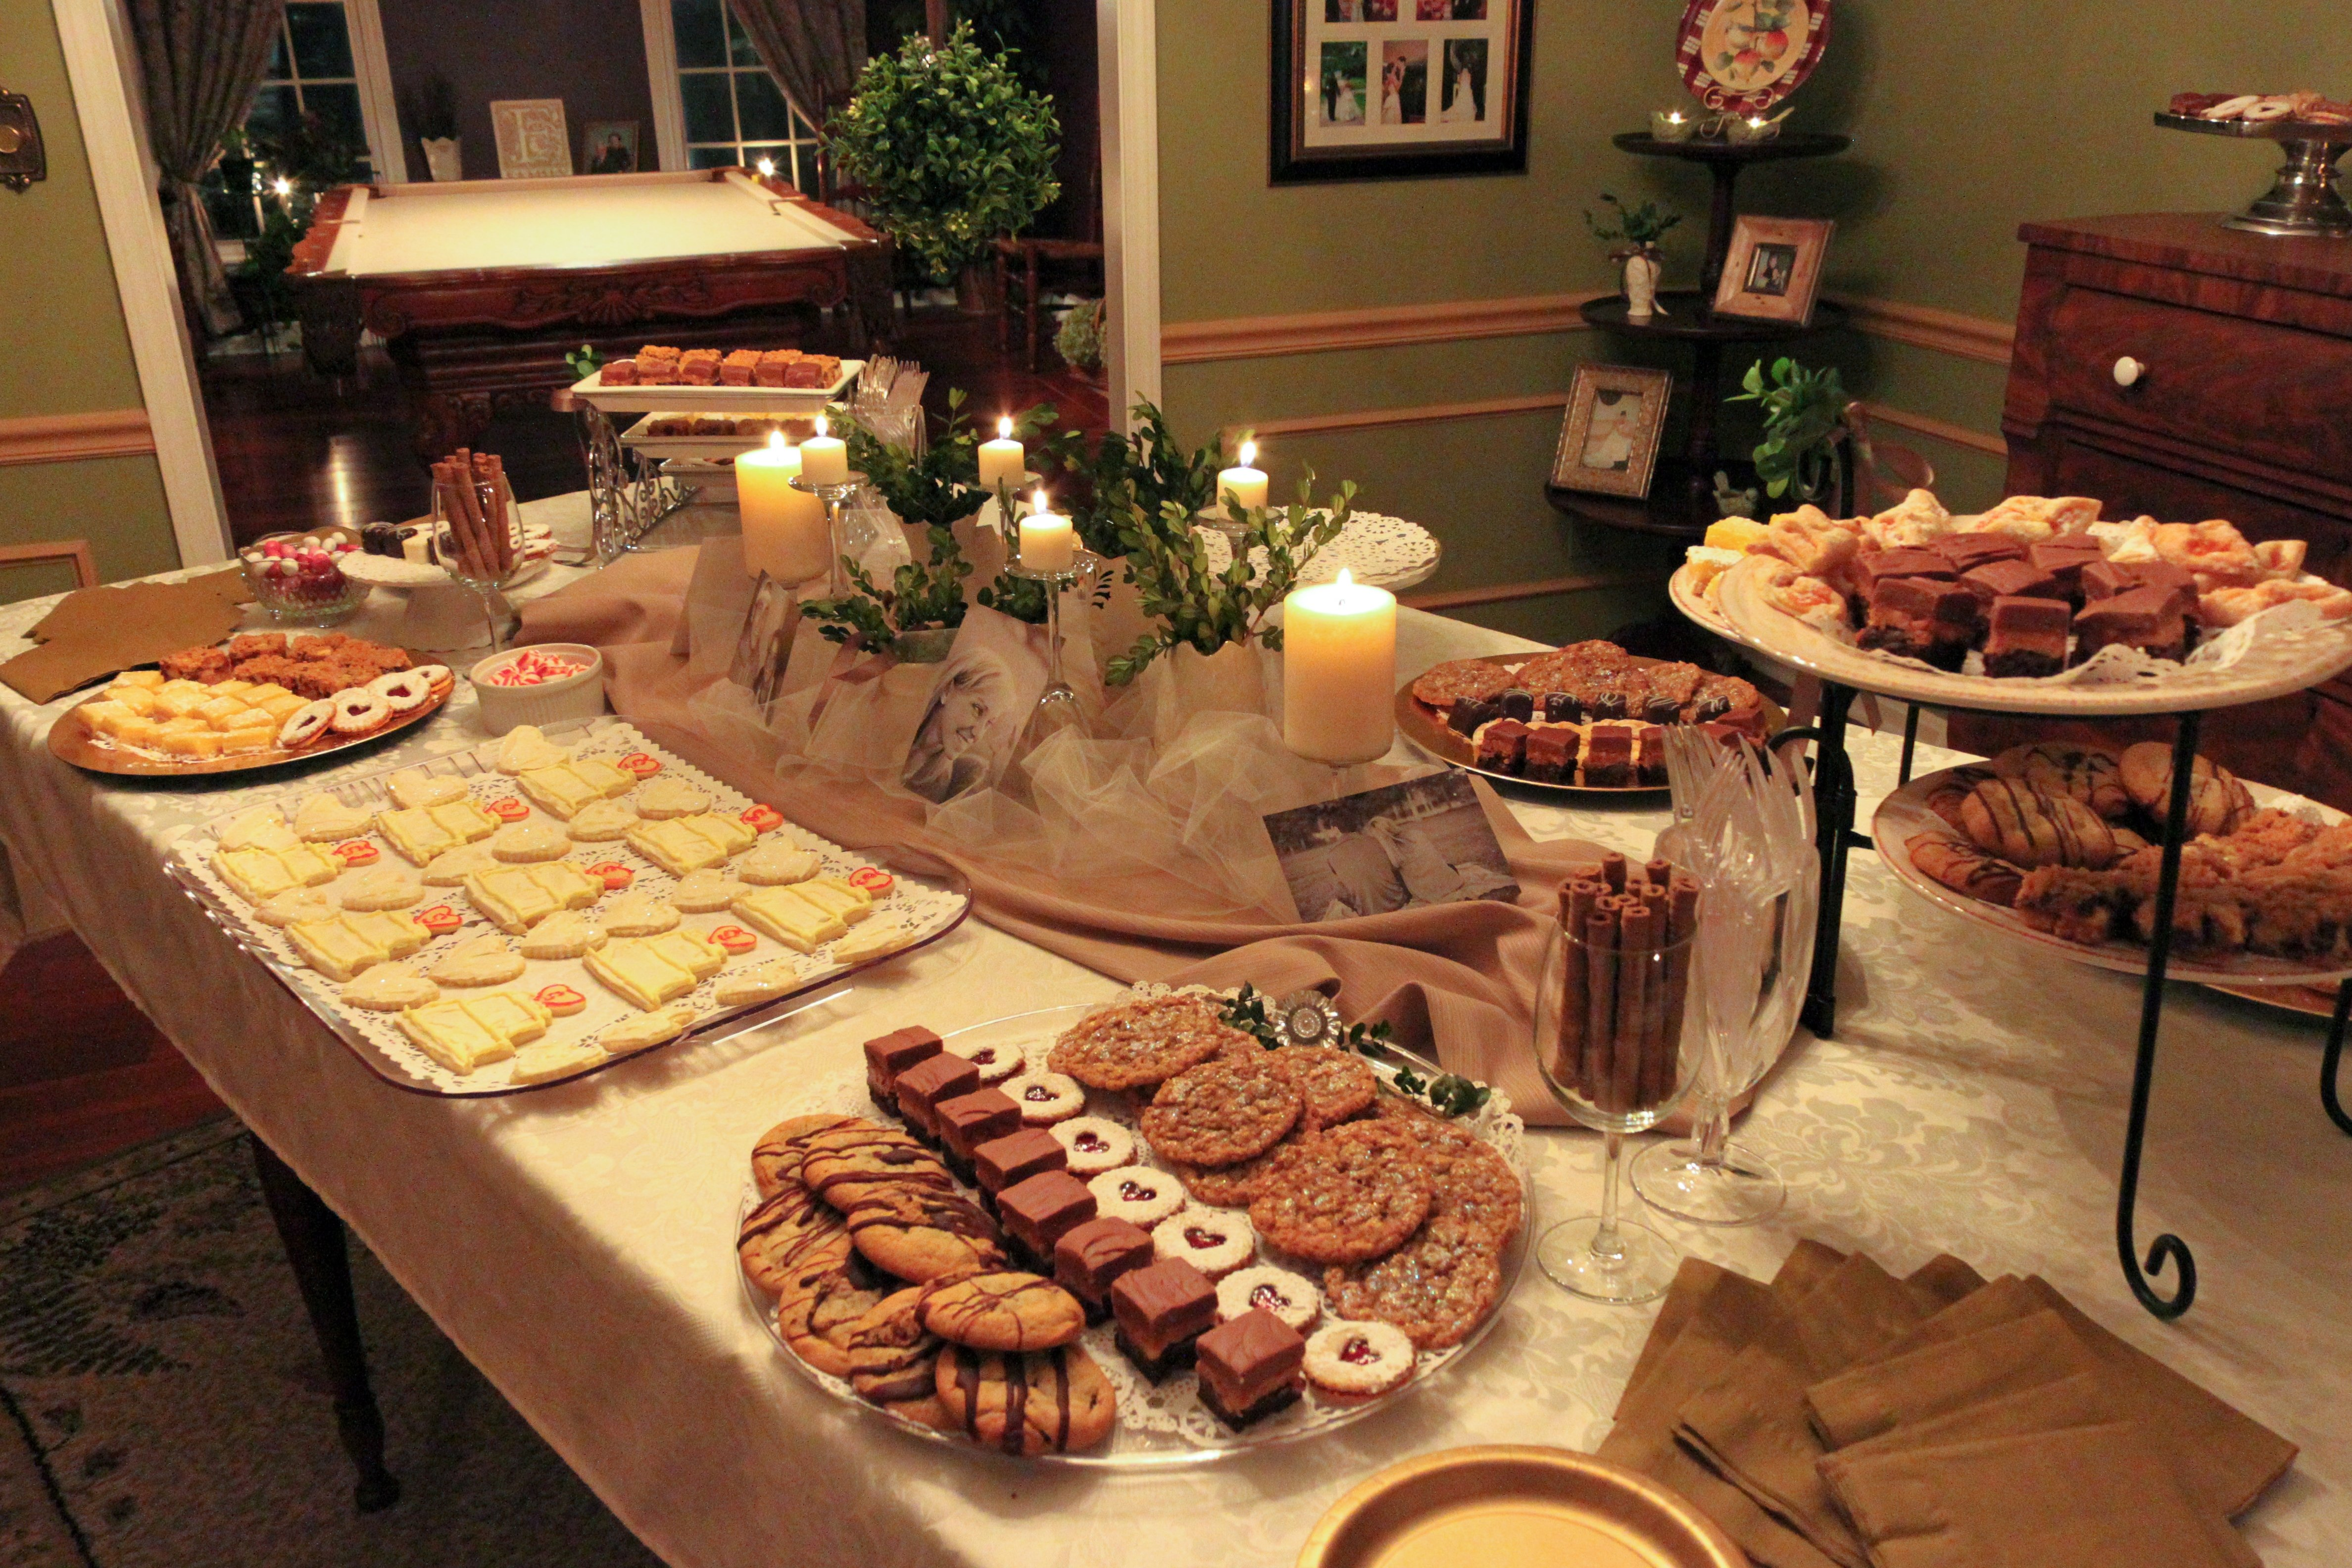 10 Stylish Engagement Party Ideas At Home breathtaking engagement party decorations at home 59 for your room 2021